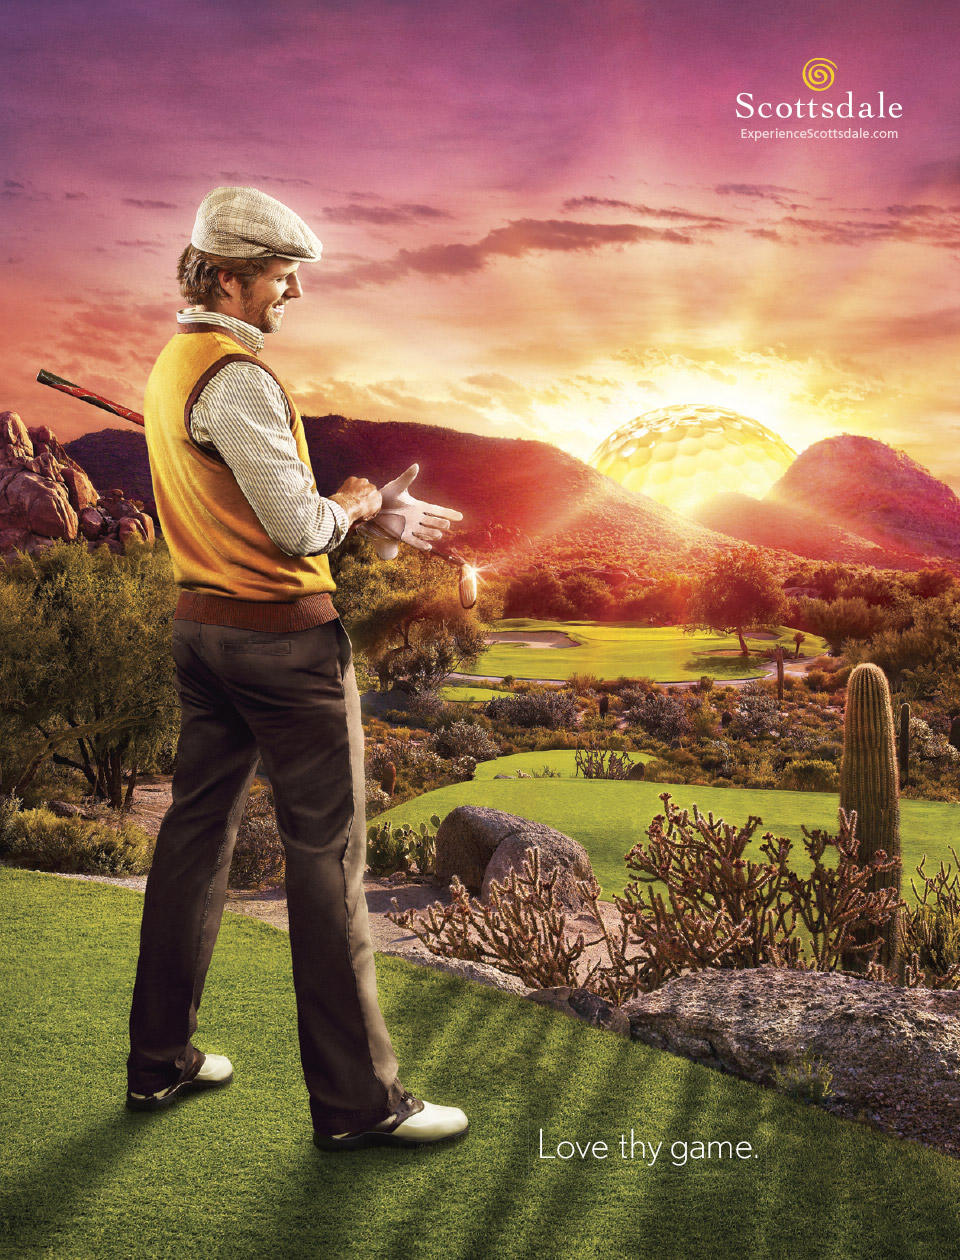 Scottsdale_game-golf-ad.png